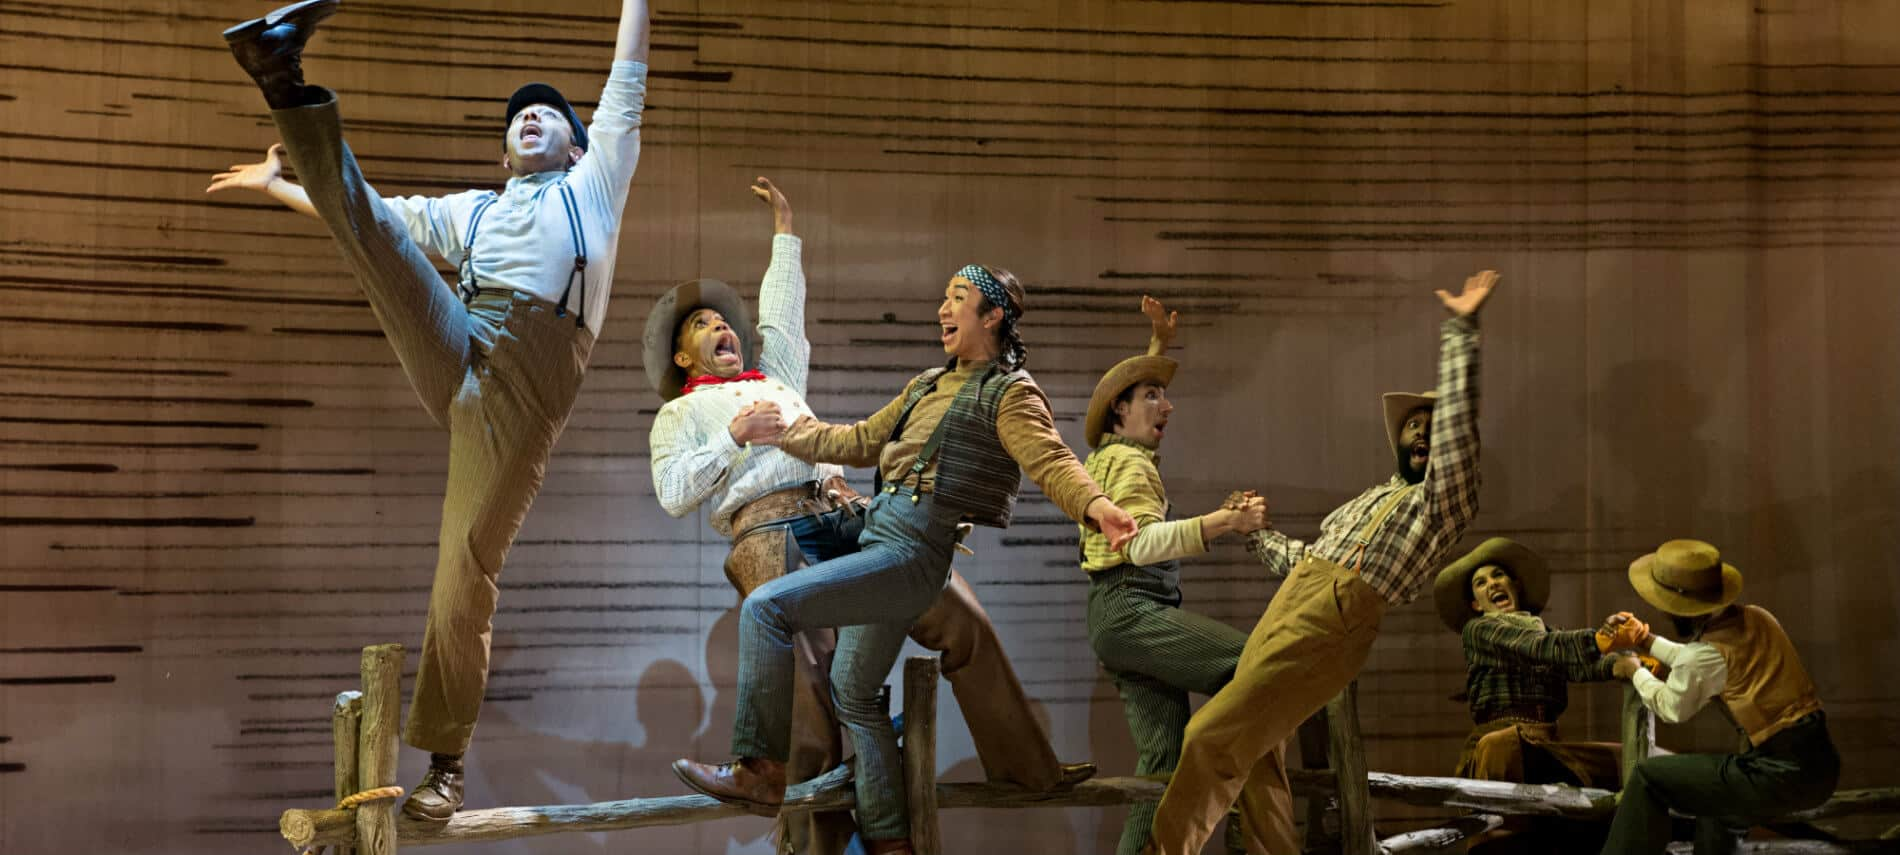 Several cast members in western themed costumes standing in dancing positions on a brown stage